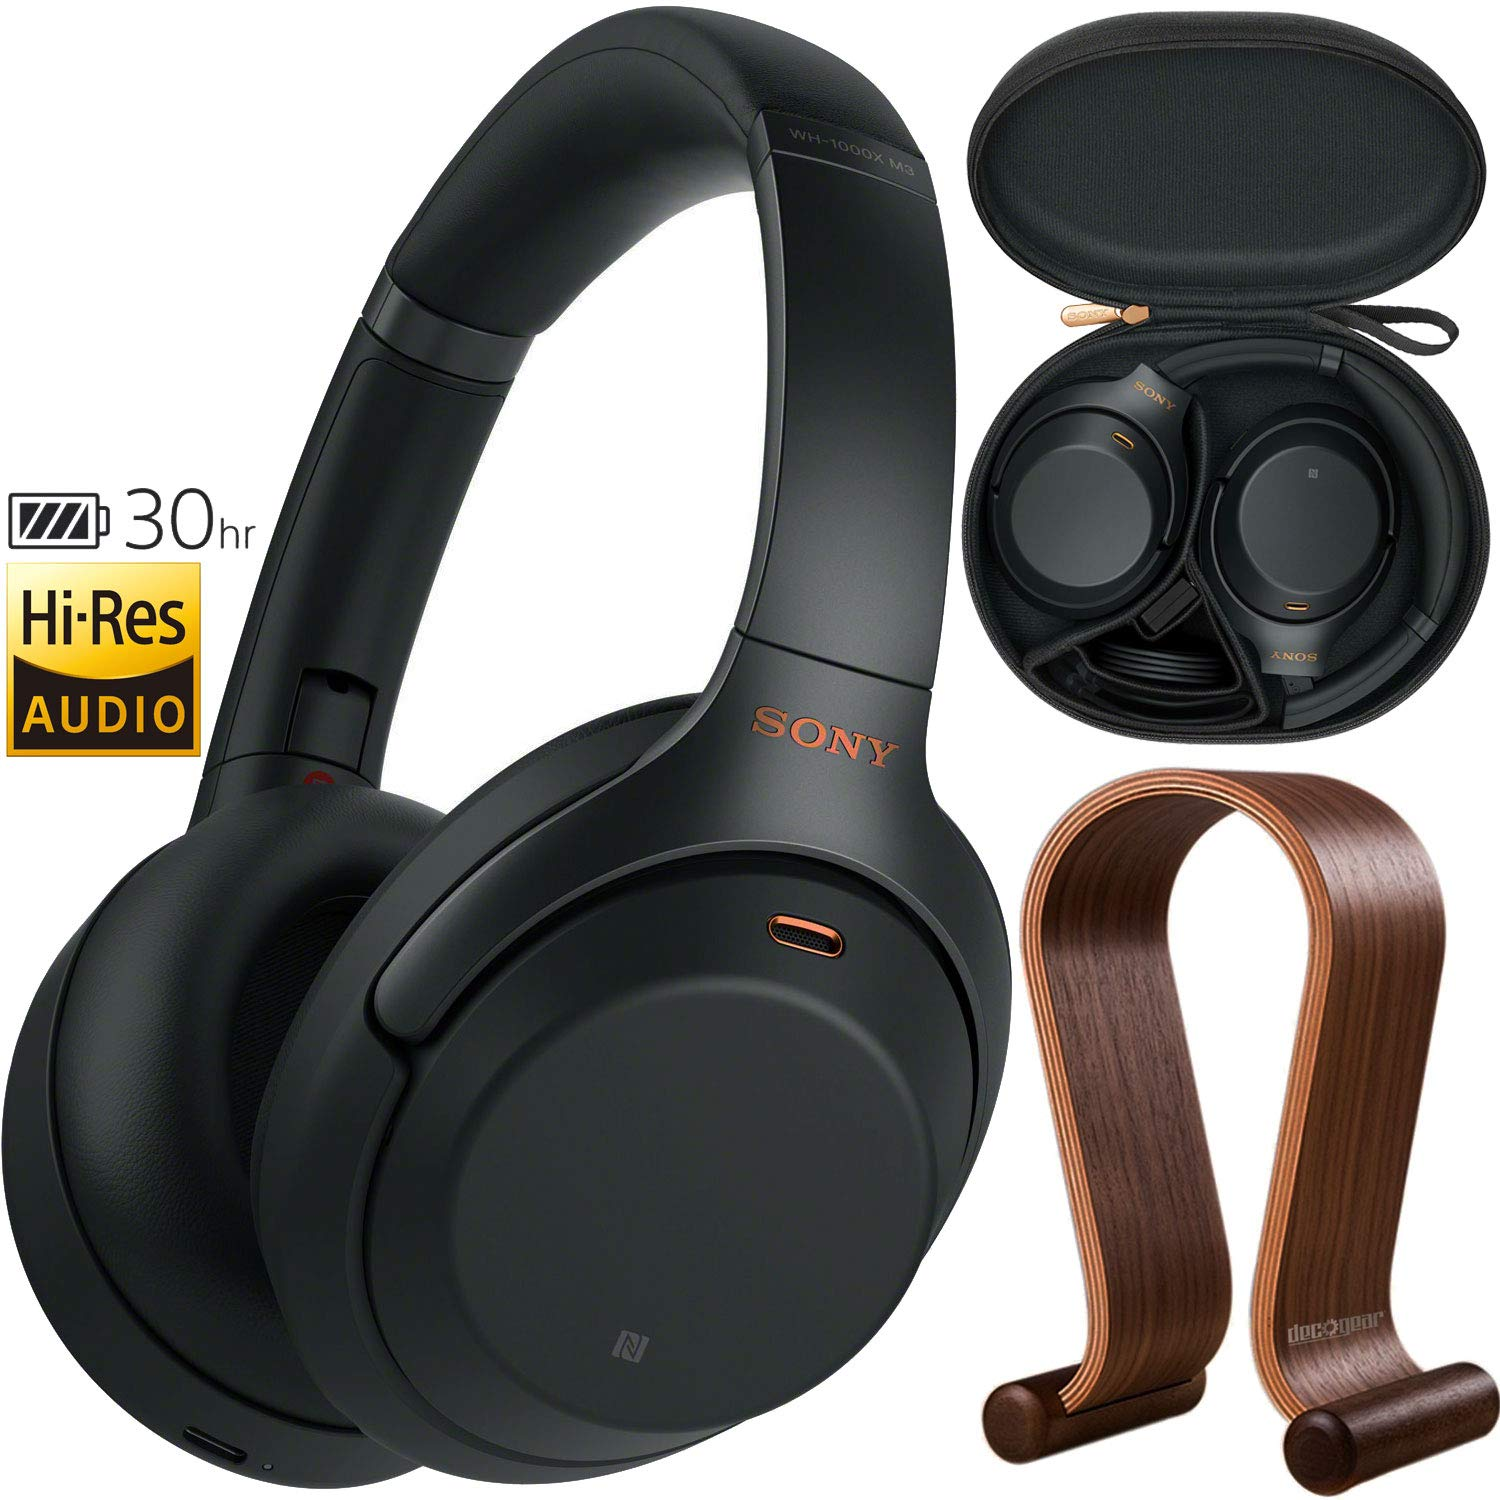 Sony WH1000XM3/B Premium Noise Cancelling Wireless Headphones w/Microphone (Black) + Wood Headphone Stand + Headphone Case by Sony